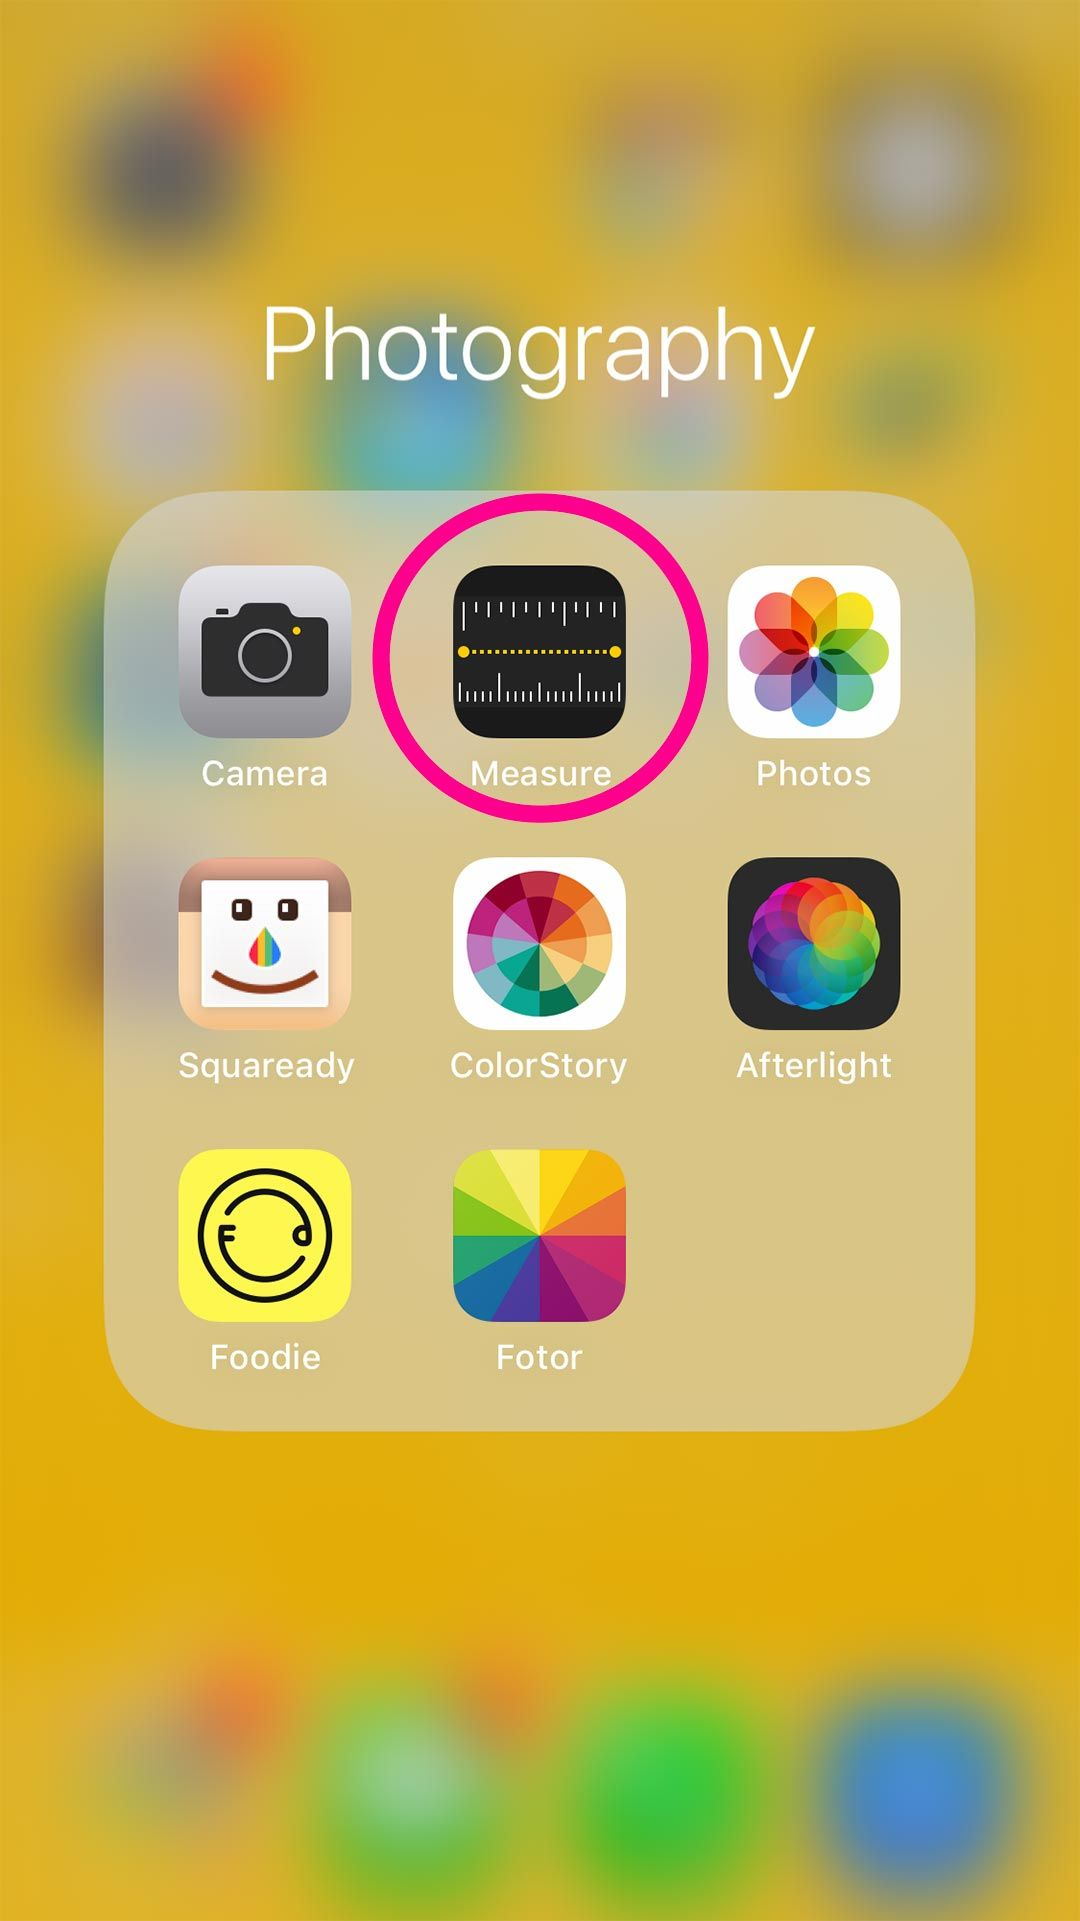 4 iPhone Features You Didn't Know Could Improve Your